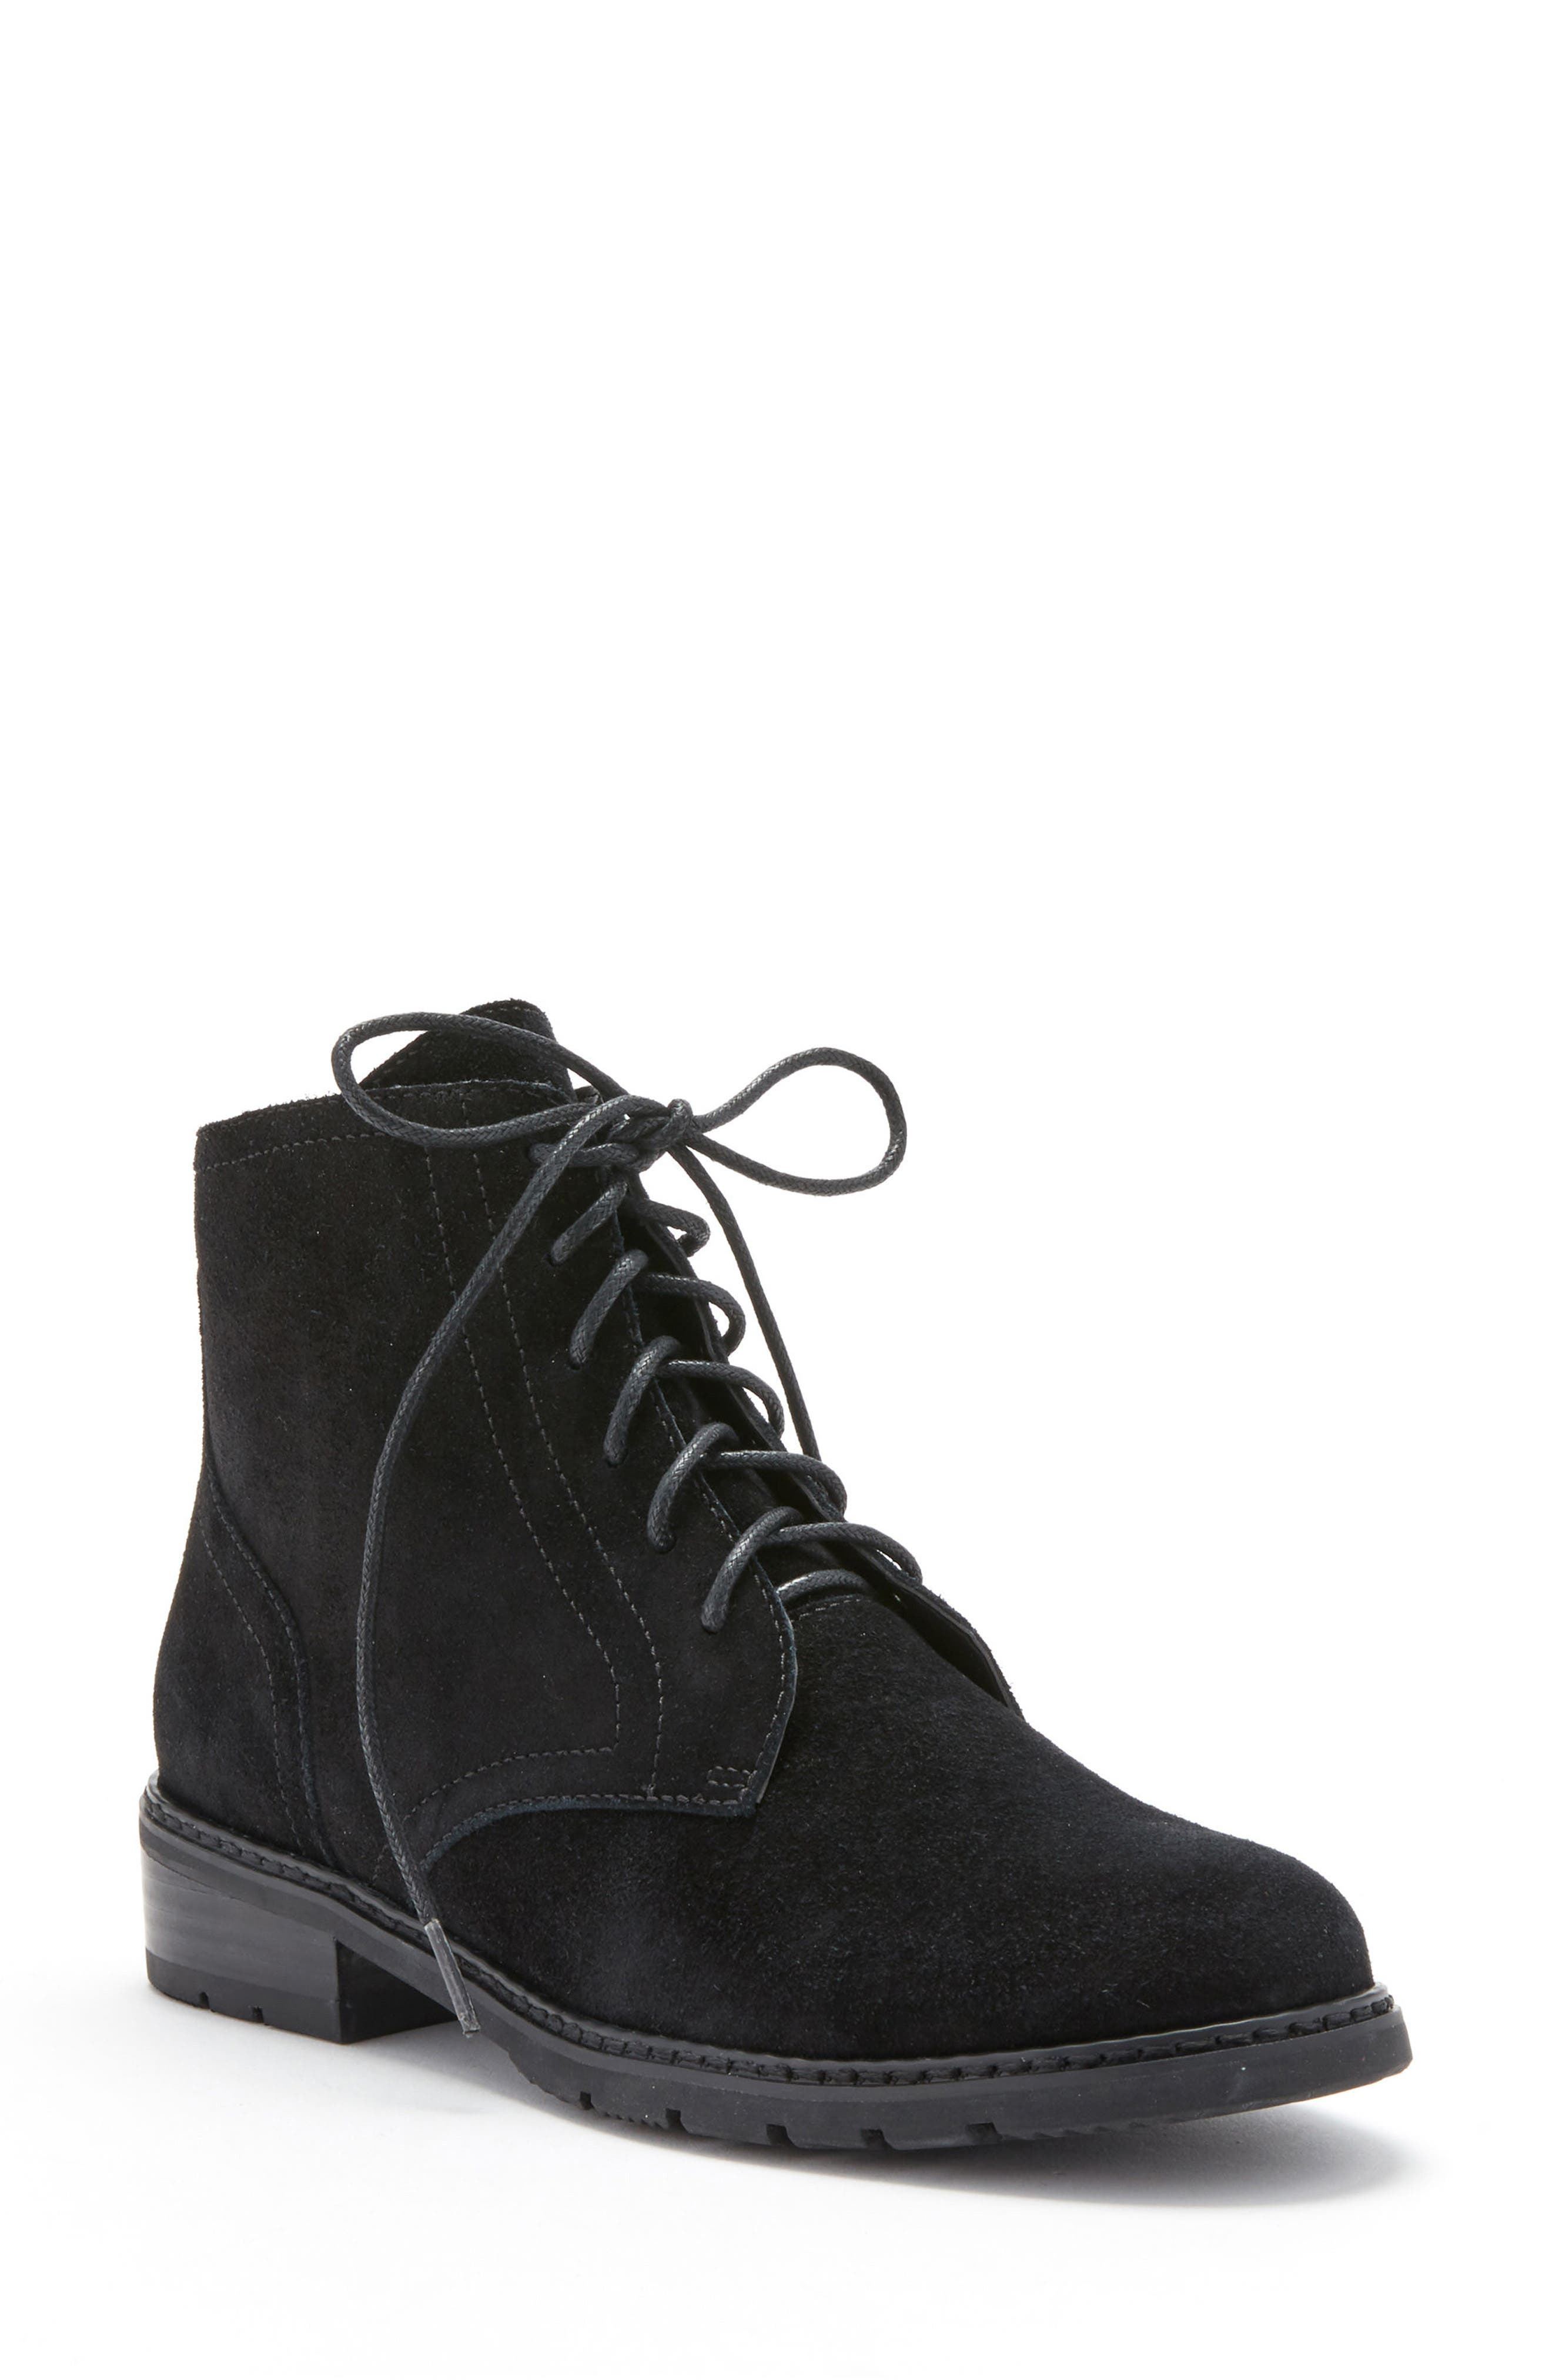 Vivi Waterproof Boot,                             Main thumbnail 1, color,                             Black Suede